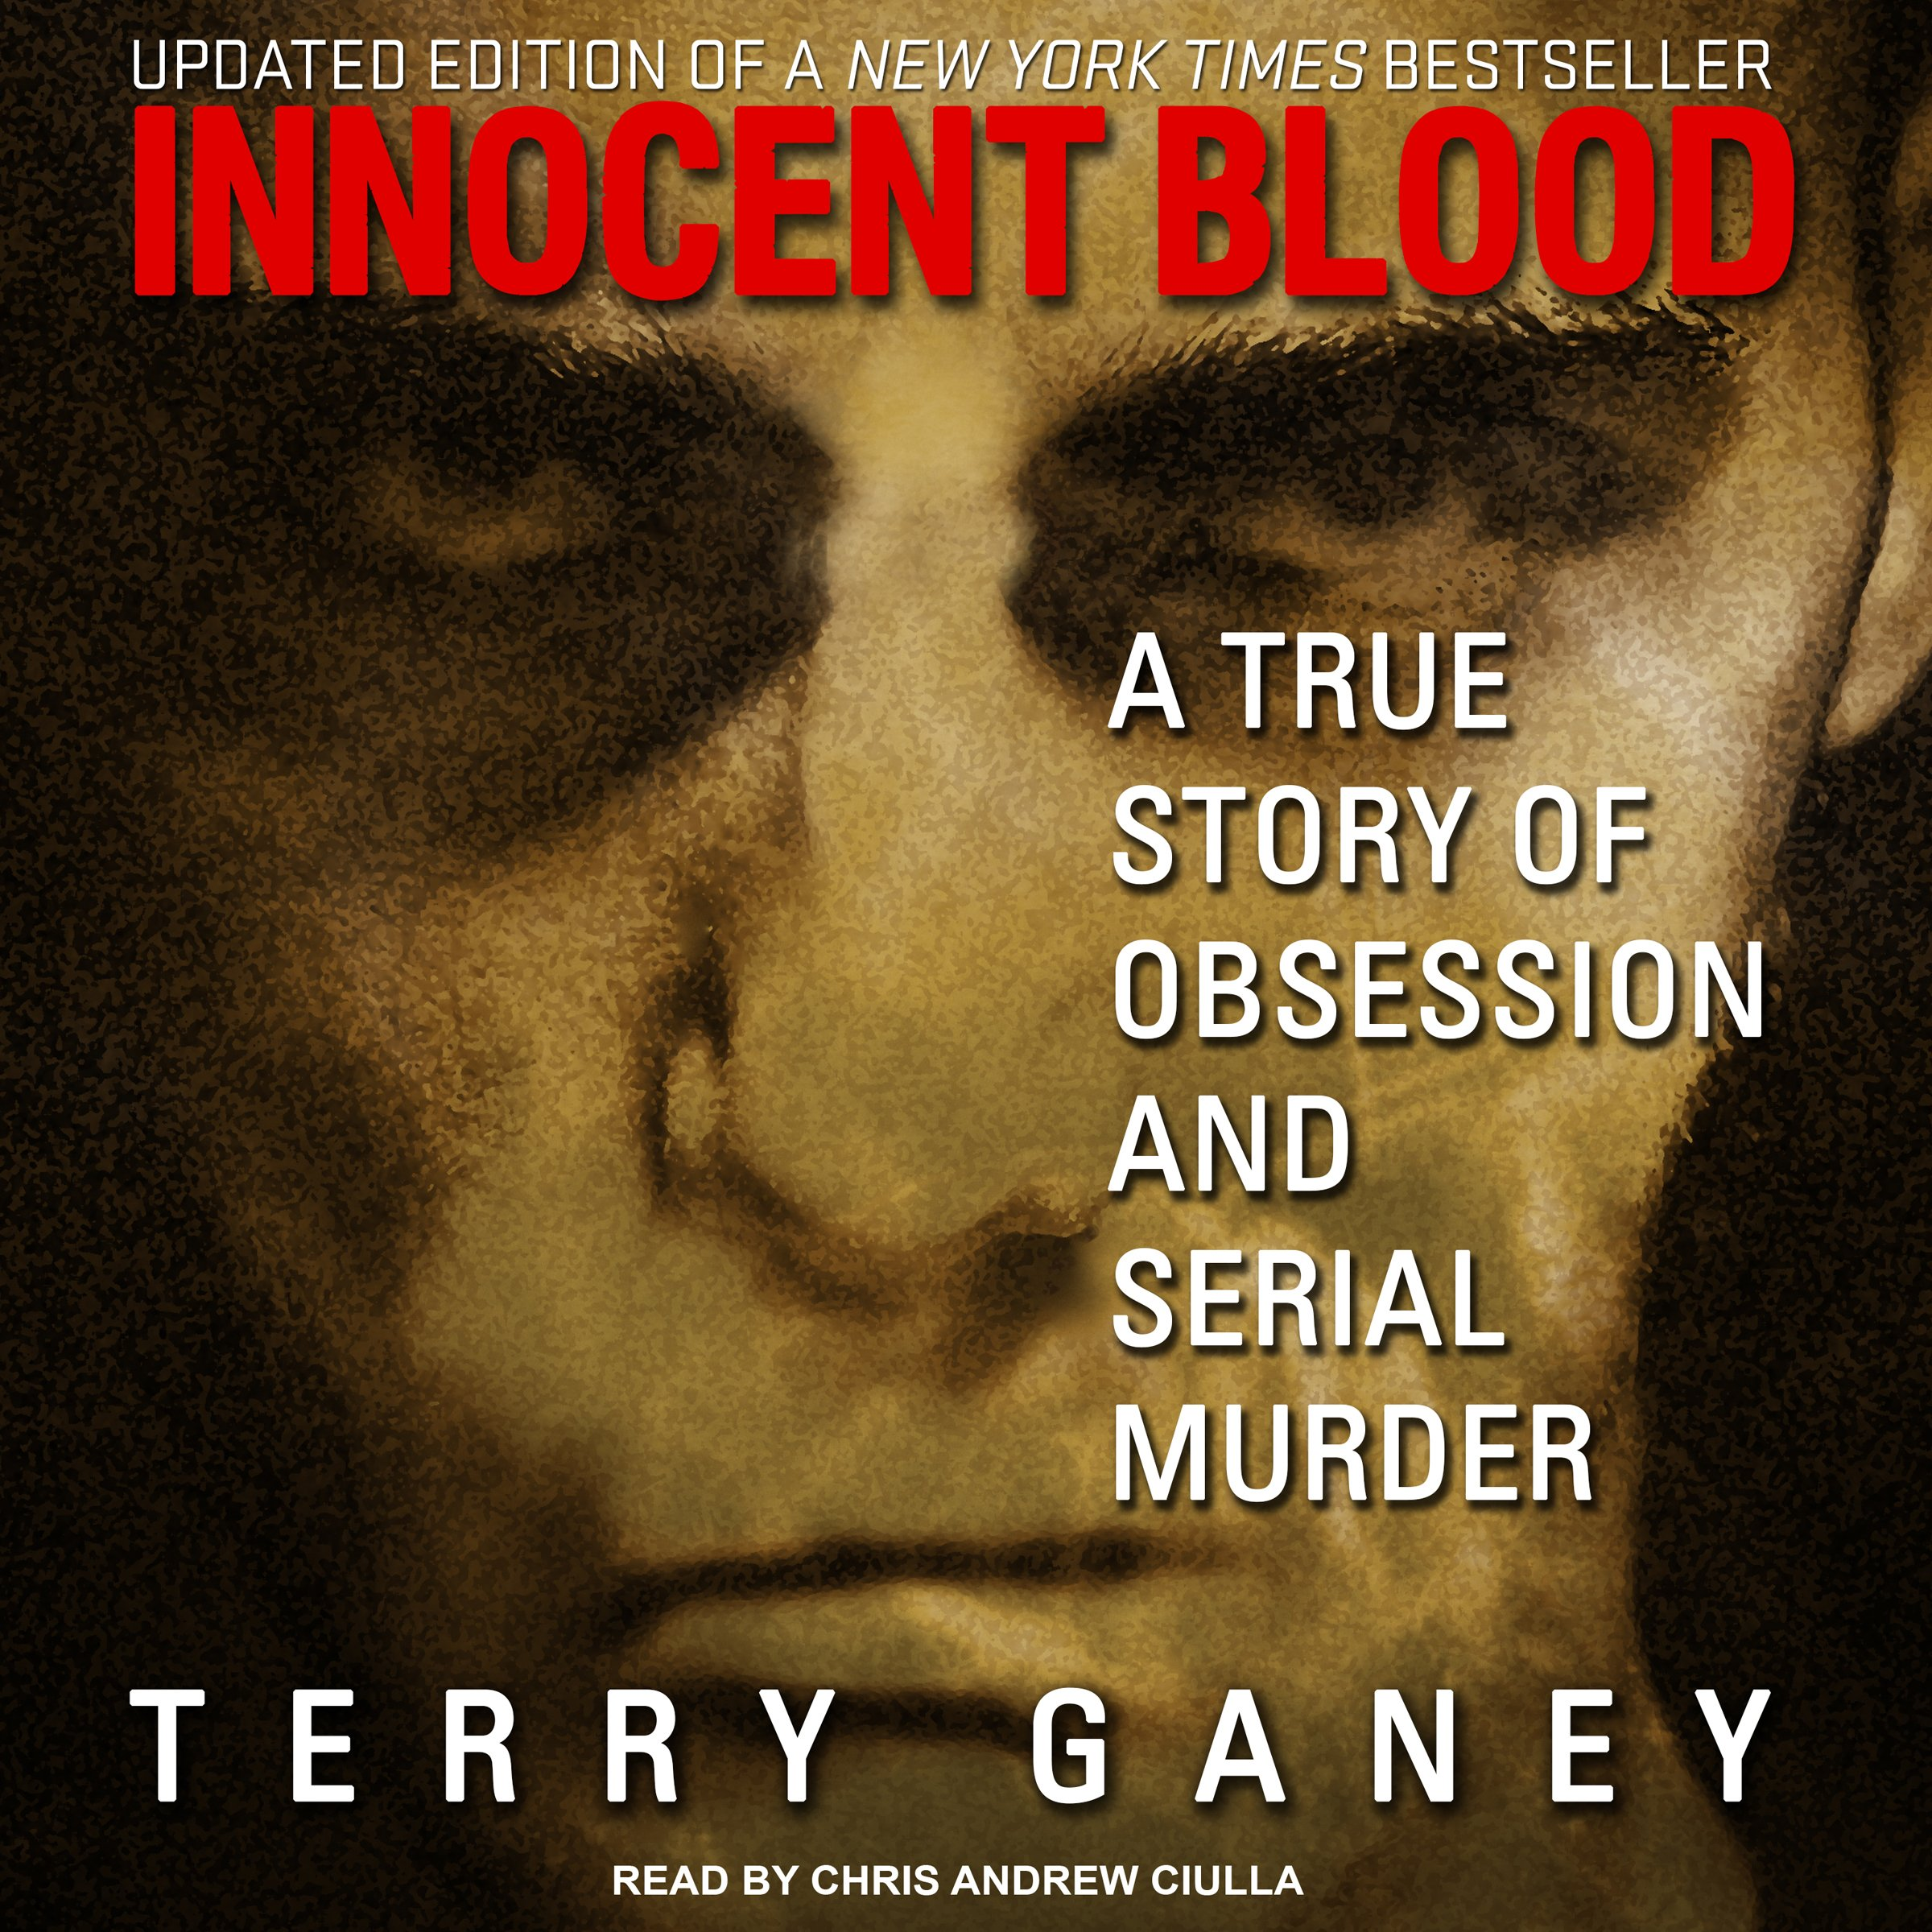 Innocent Blood: A True Story of Obsession and Serial Murder